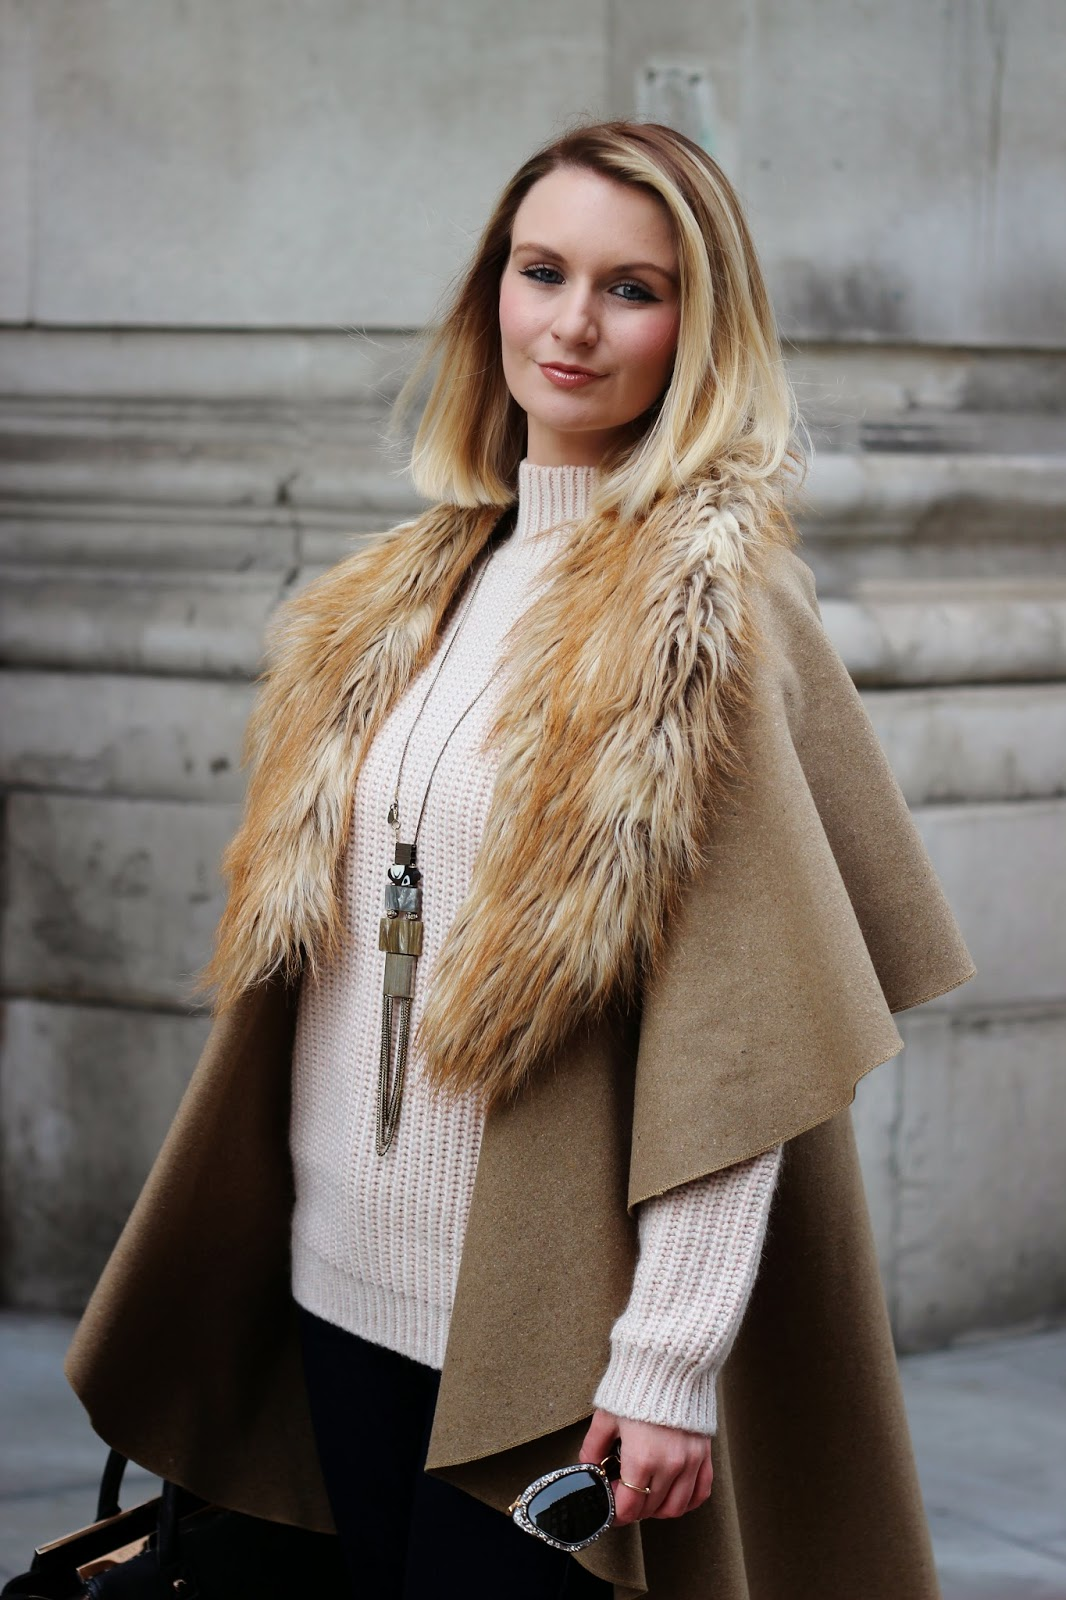 London fashion week aw15 street style, LFW AW15, LFW15, street style, seventies trend, seventies styling, 70's, OOTD, fashion blogger, stylist, somerset house, flared jeans, red hot sunglasses